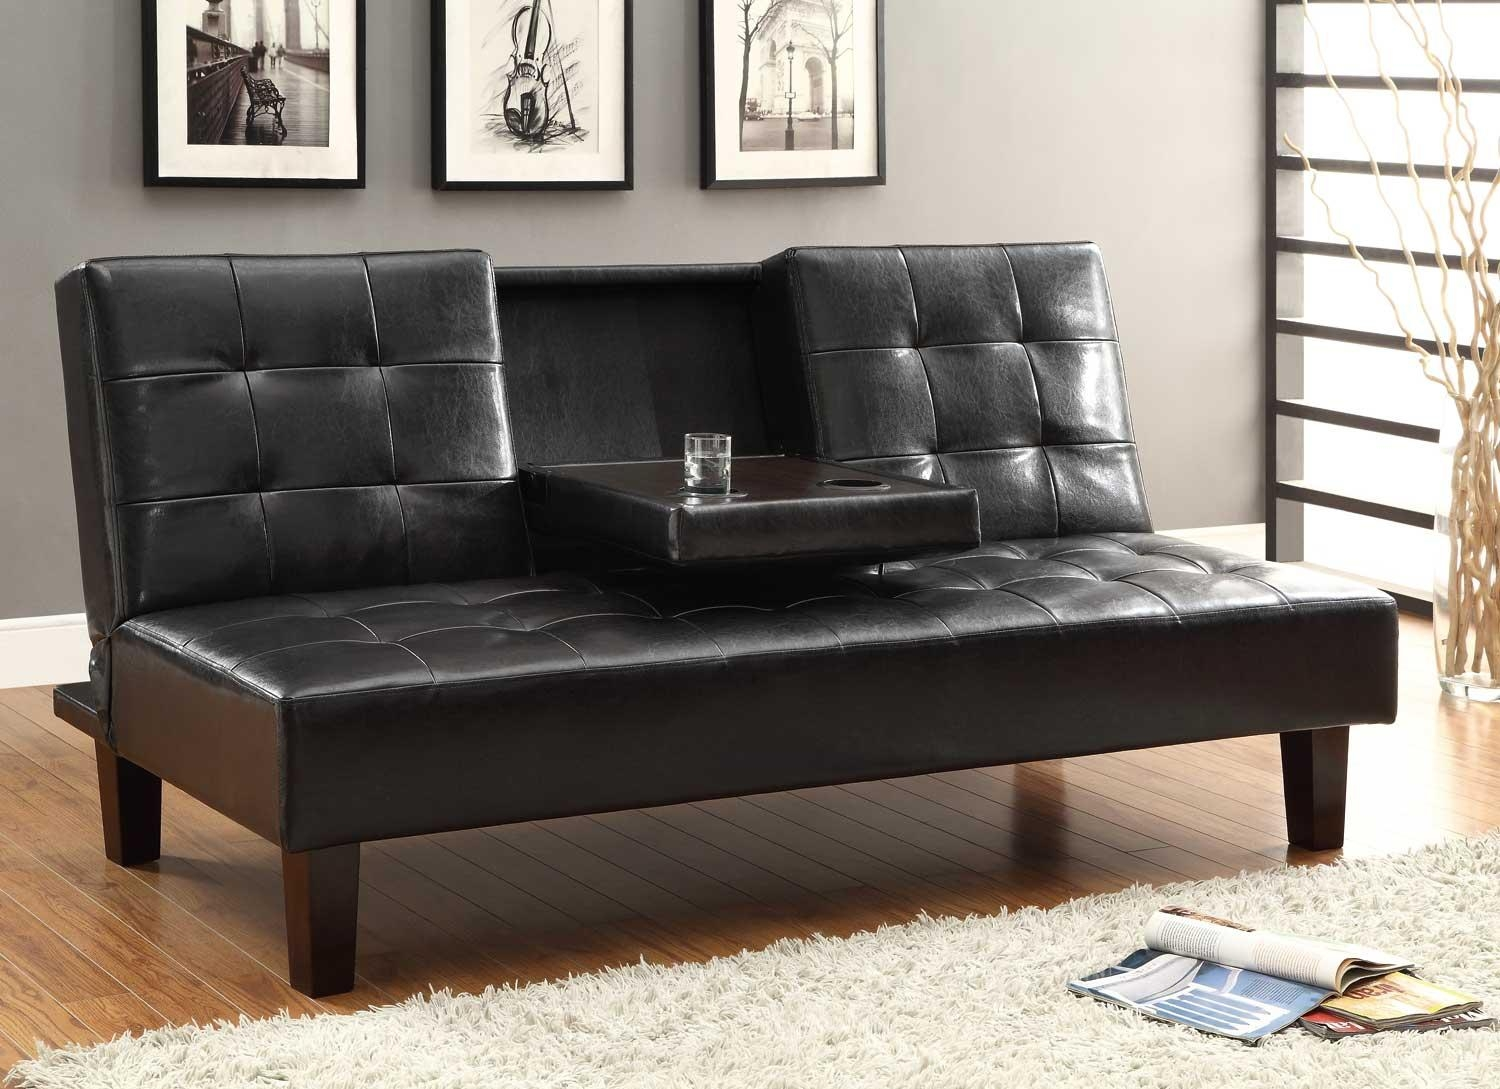 Homelegance Reel Click Clack Sofa Bed – Dark Brown – Tufted Fronts Pertaining To Clic Clac Sofa Beds (Image 12 of 20)